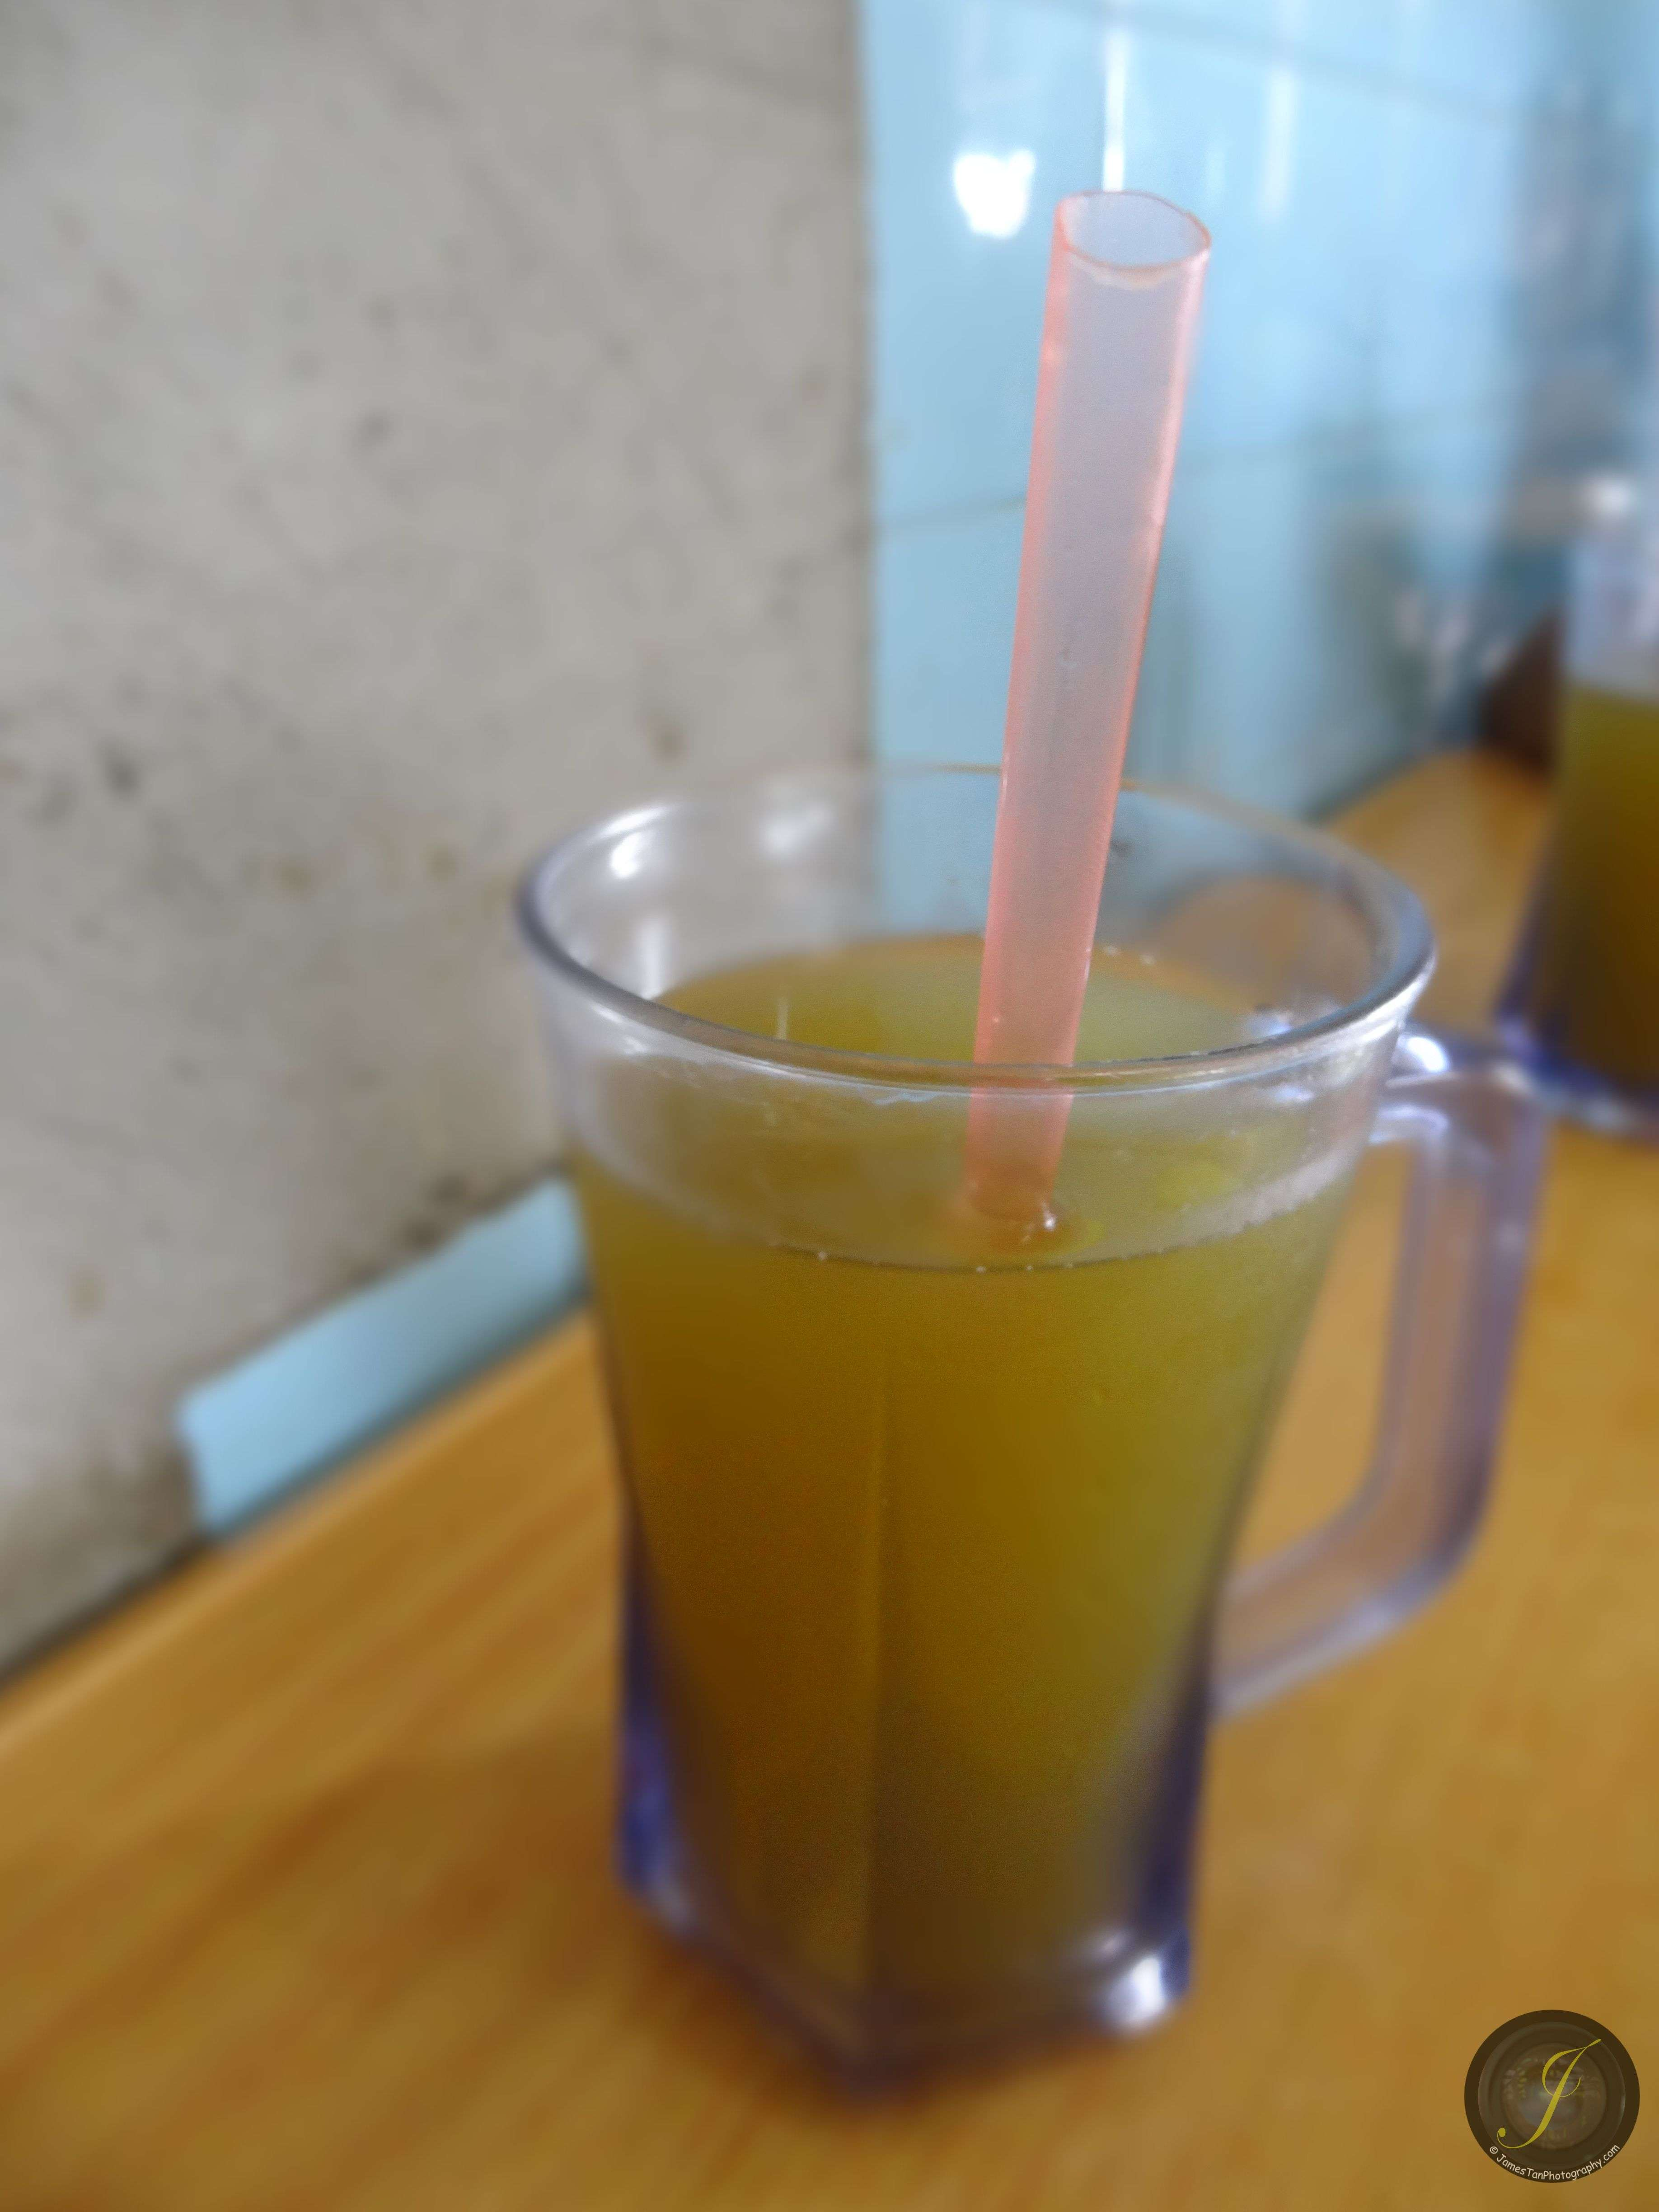 The Cane Drink